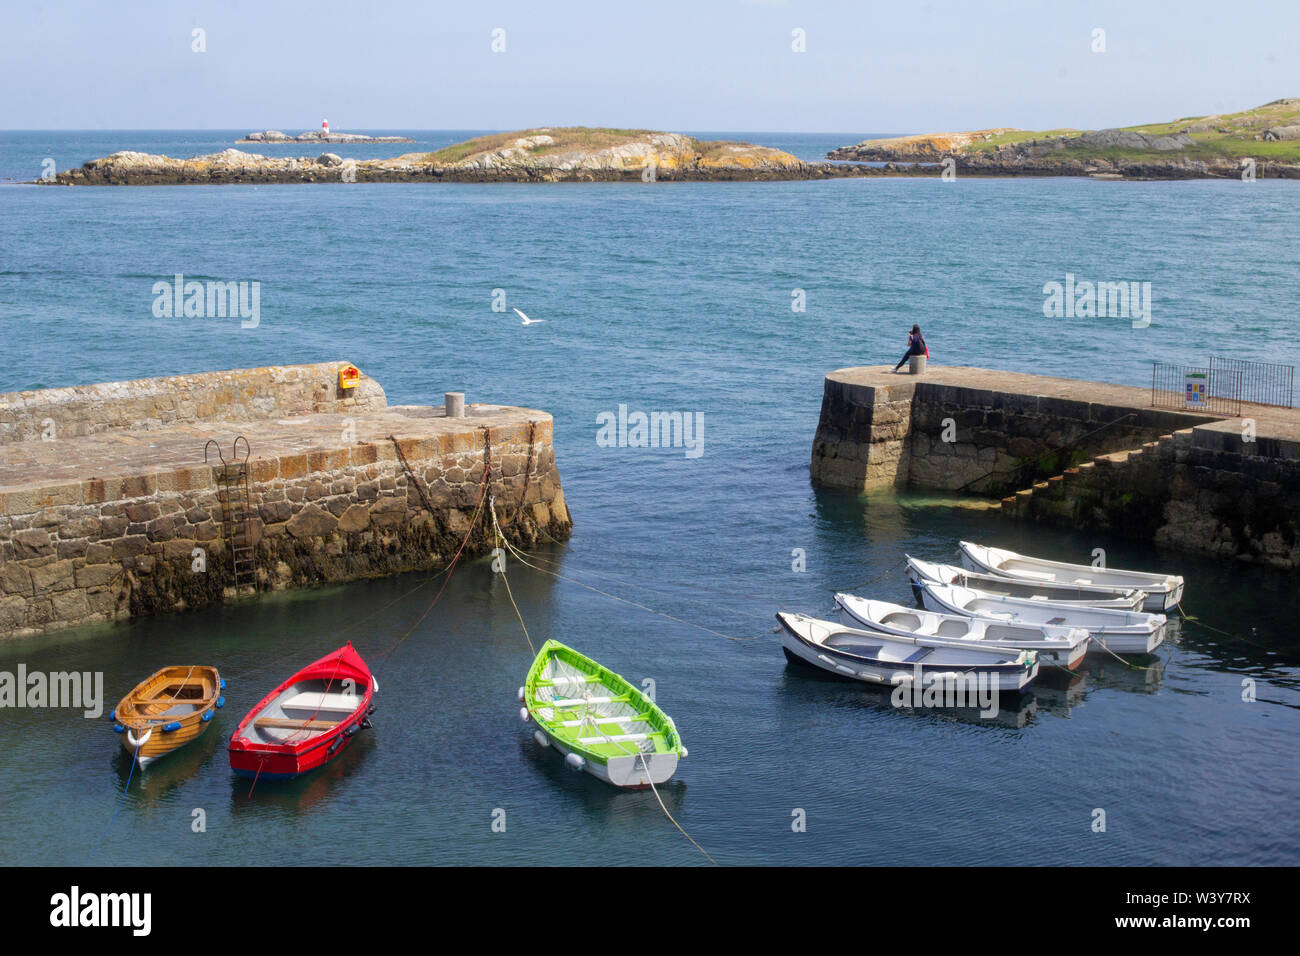 Small boats tied up in Coliemore Harbour in Dalkey, County Dublin, Ireland. In the middle ages it was the main harbour for the city of Dublin. - Stock Image